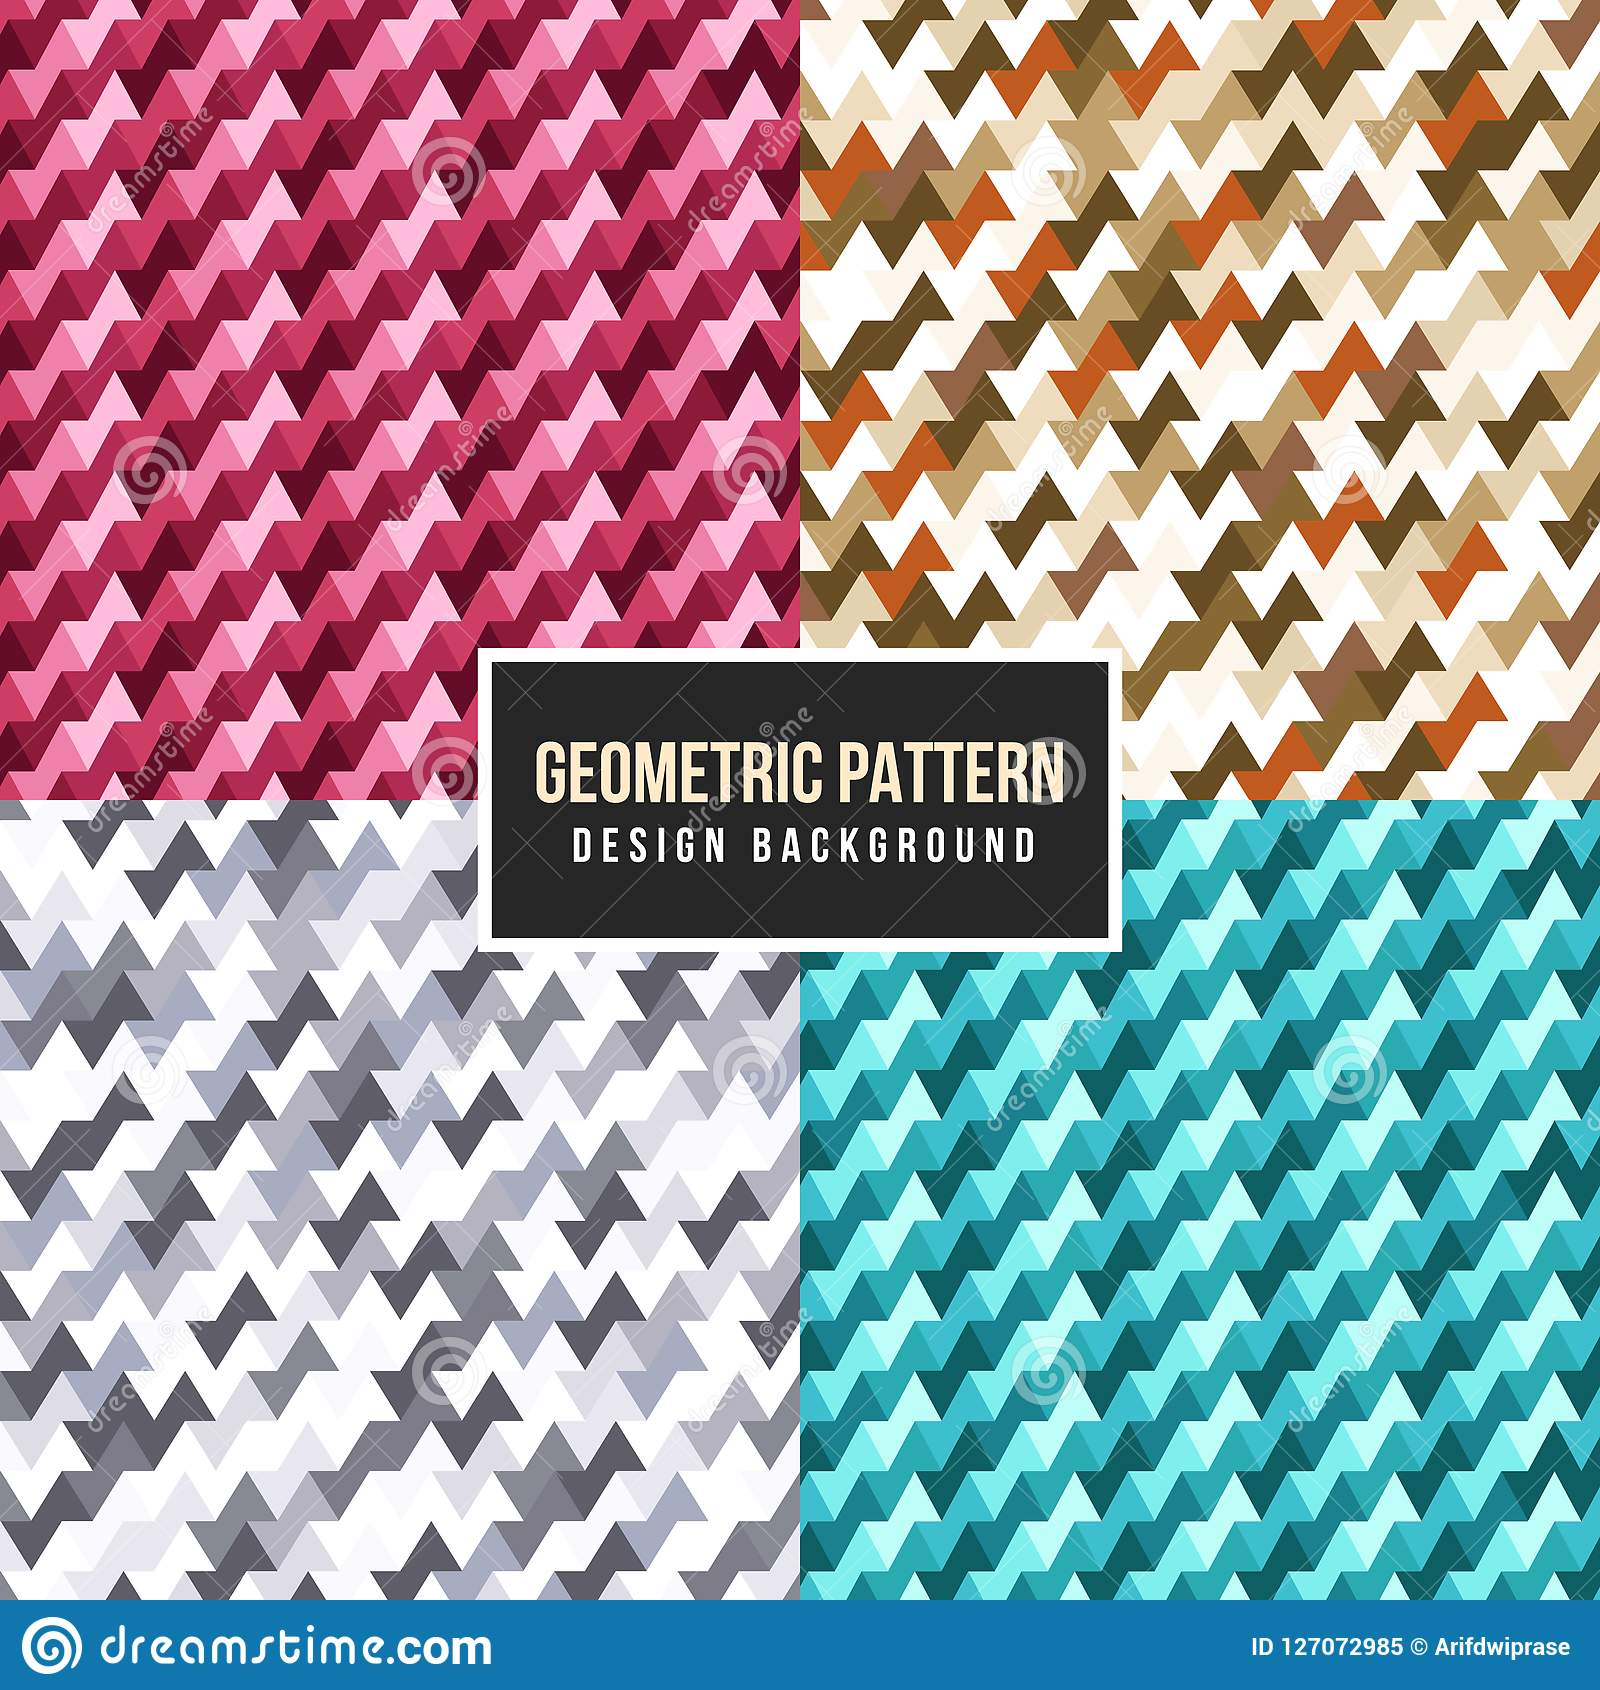 25 Creative Patchwork Tile Ideas Full Of Color And Pattern: Colorfull Vintage Abstract Geometric Pattern. Cartoon